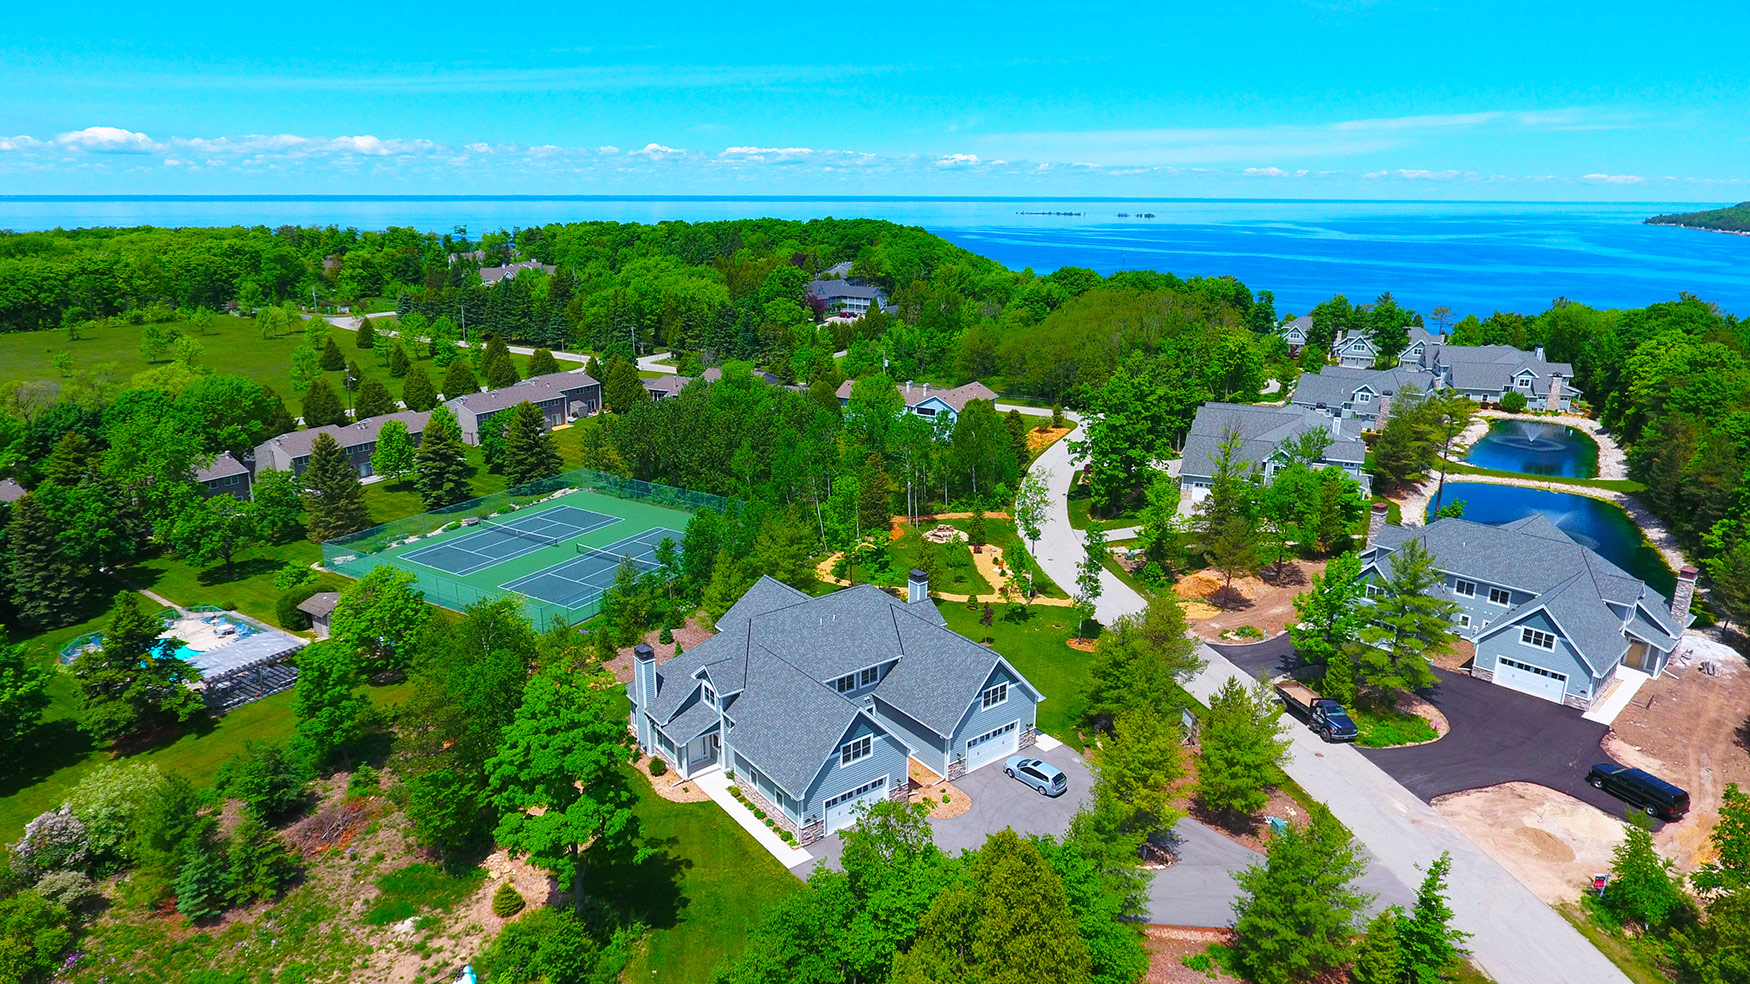 Drone Skytography Services - Fox Valley Web Design LLC